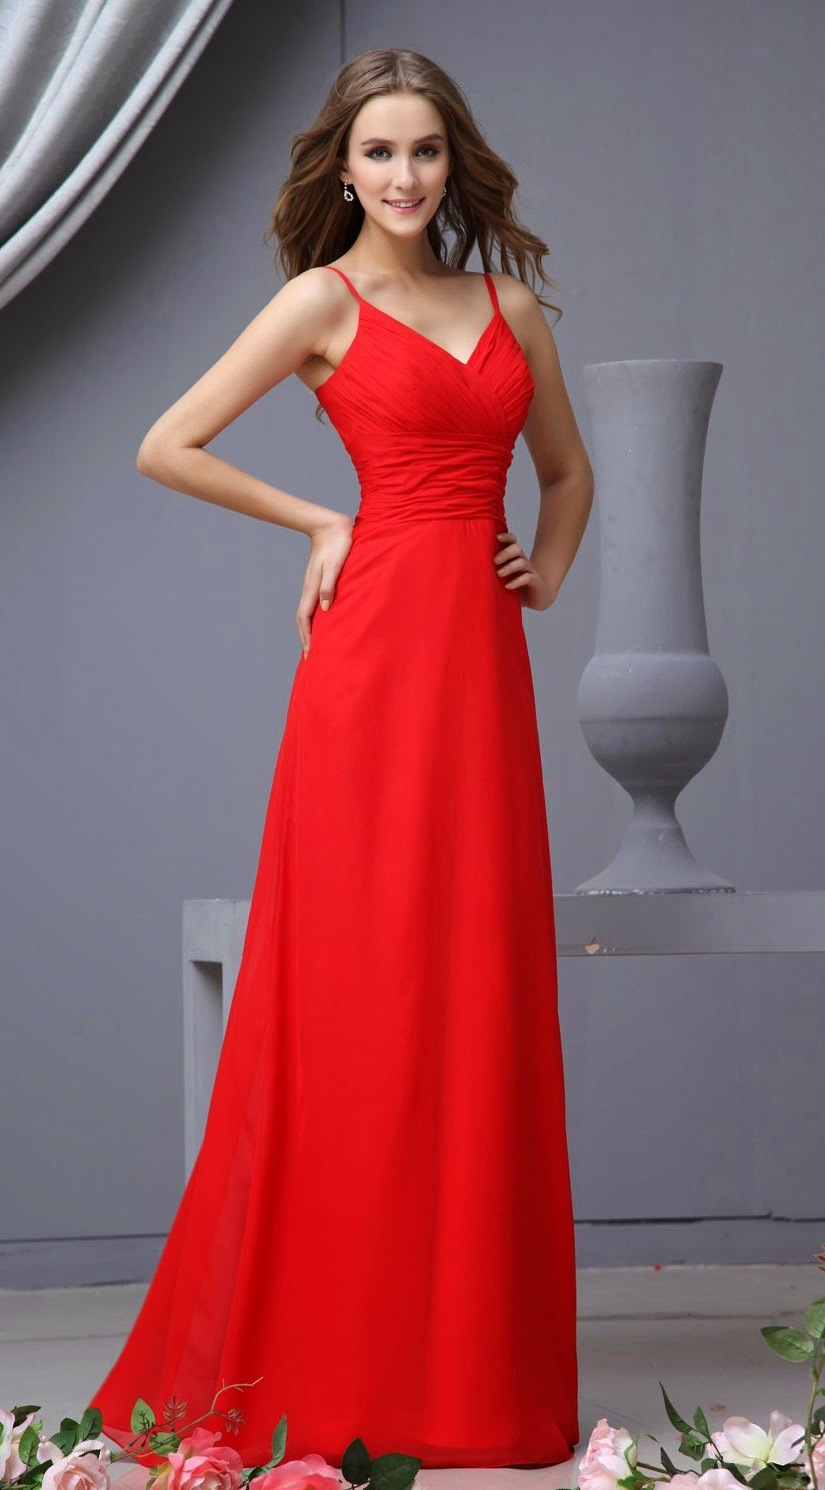 Elegant Red Bridesmaid Dresses with Straps